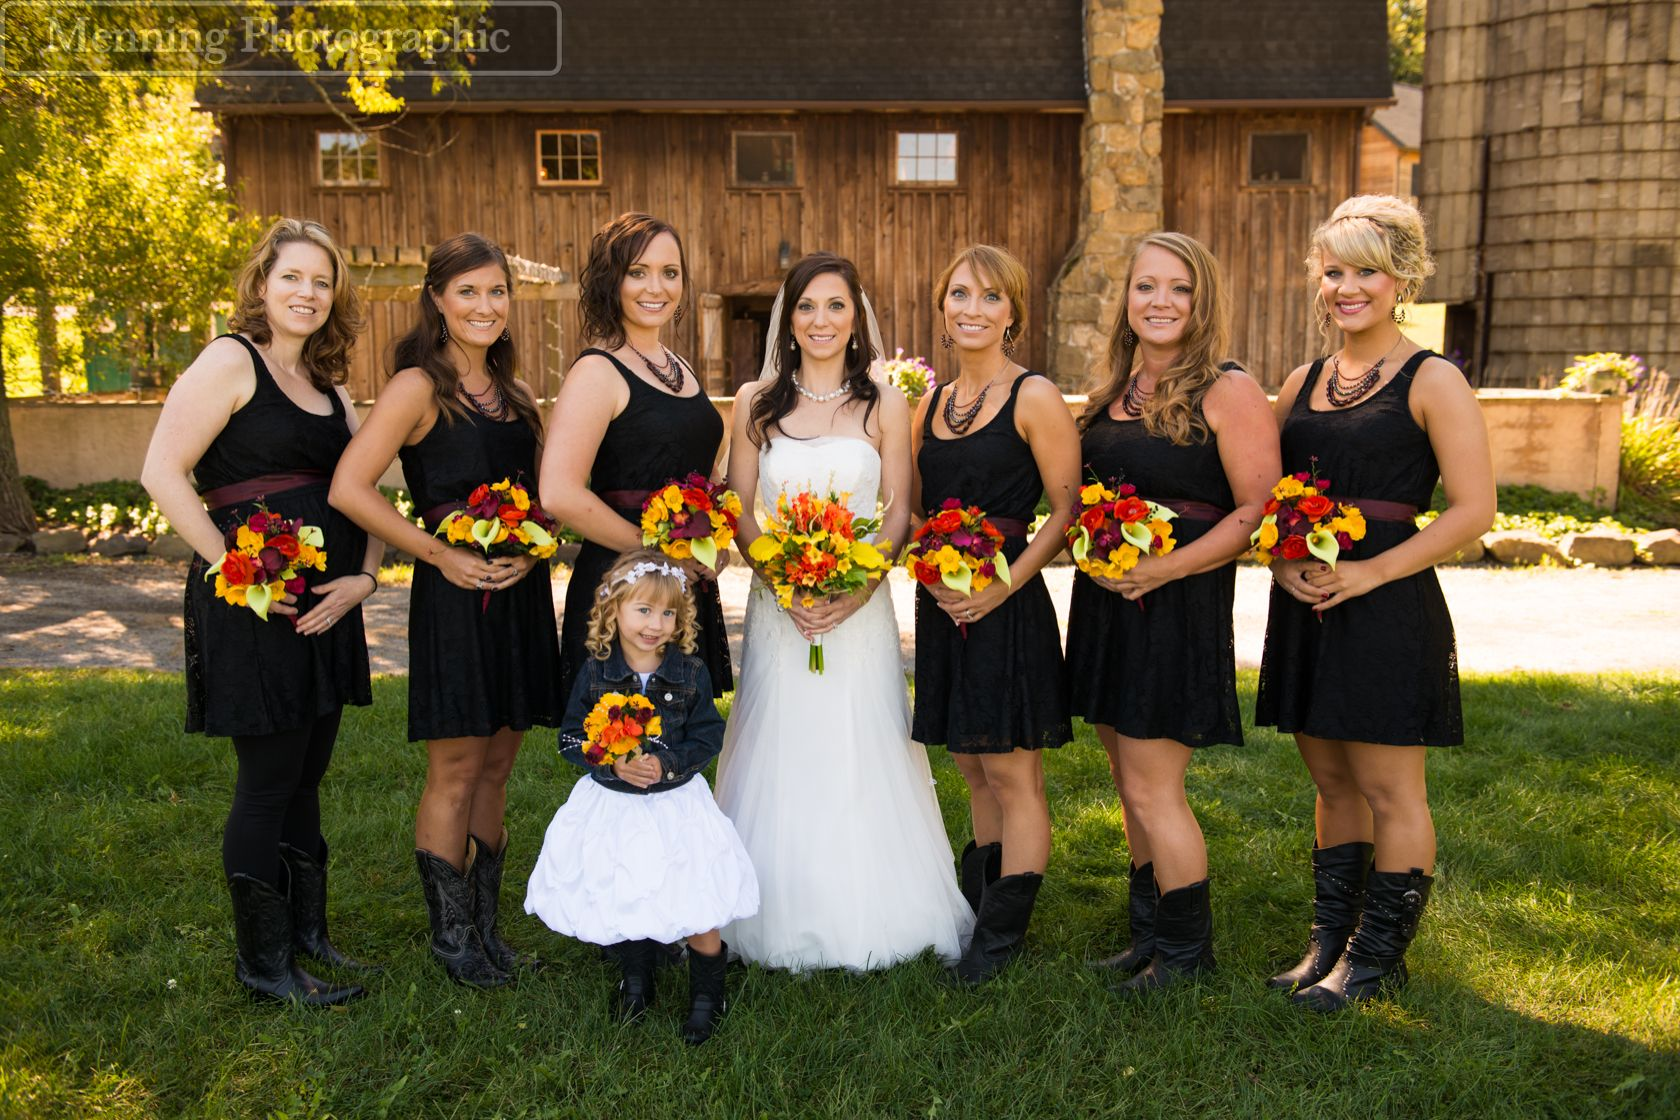 Bridal party with cowboy boots and black lace dresses for a rustic bridal party with cowboy boots and black lace dresses for a rustic barn wedding ombrellifo Image collections